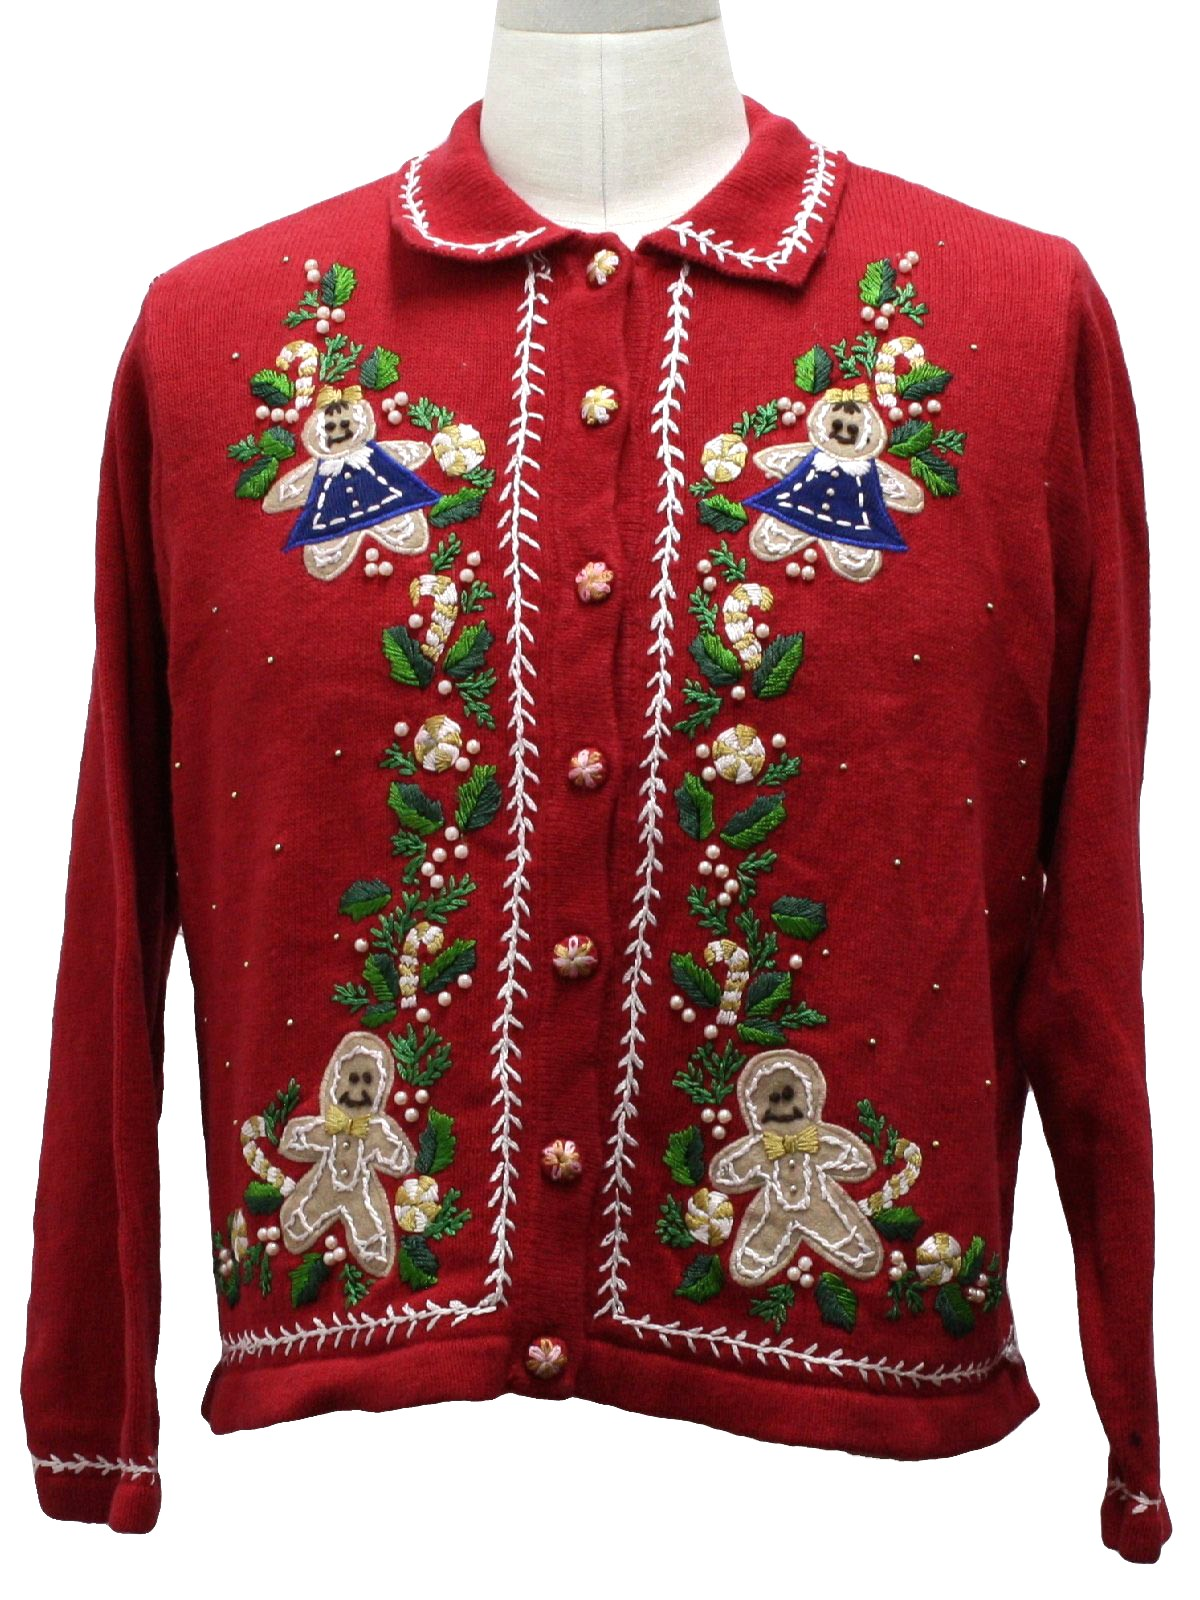 Womens Ugly Christmas Sweater: -Victoria Jones- Womens red ...